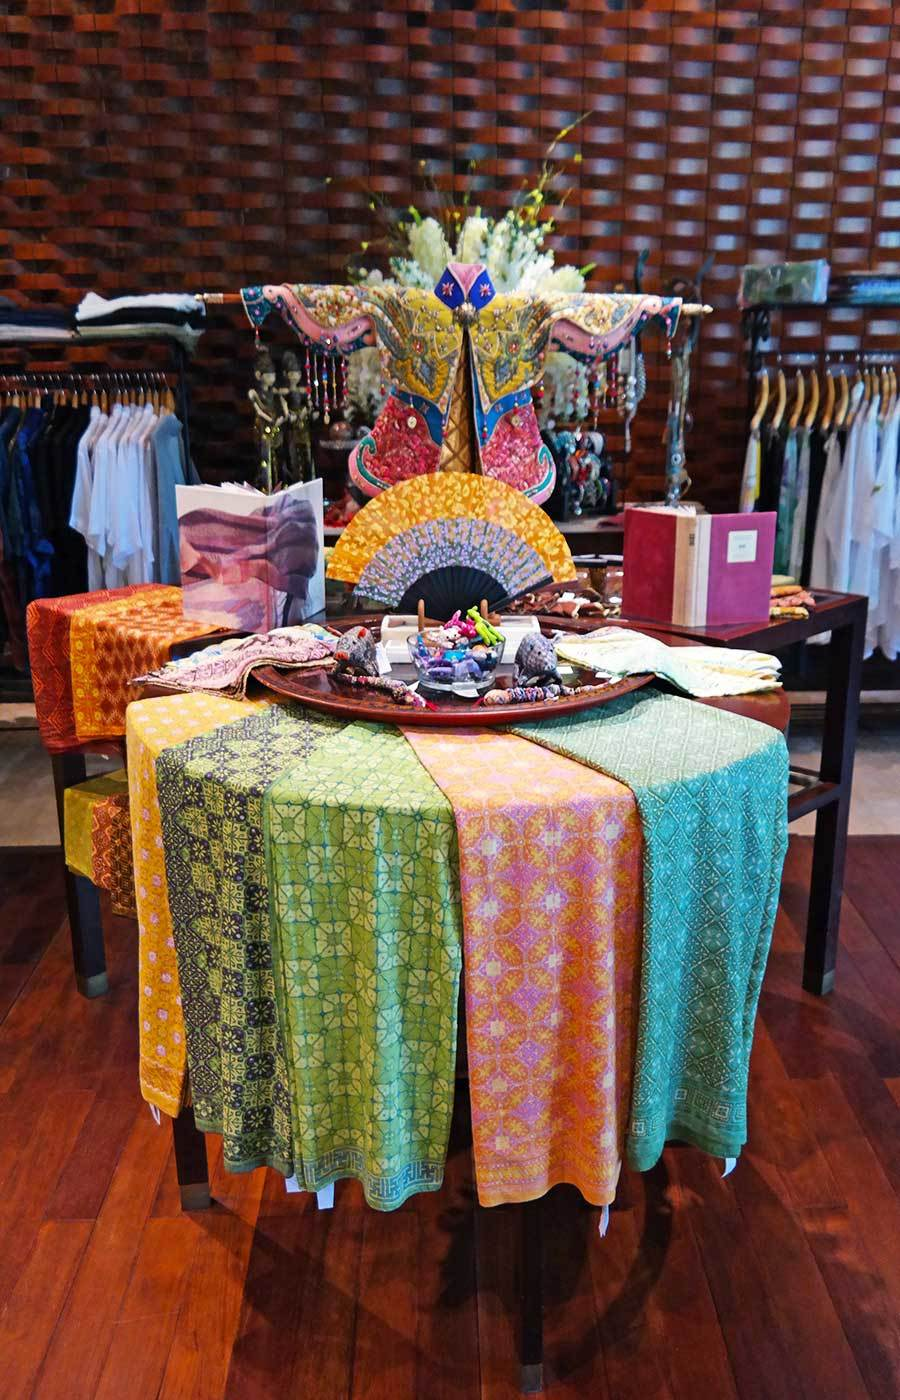 st-regis-bali-shop-boutique